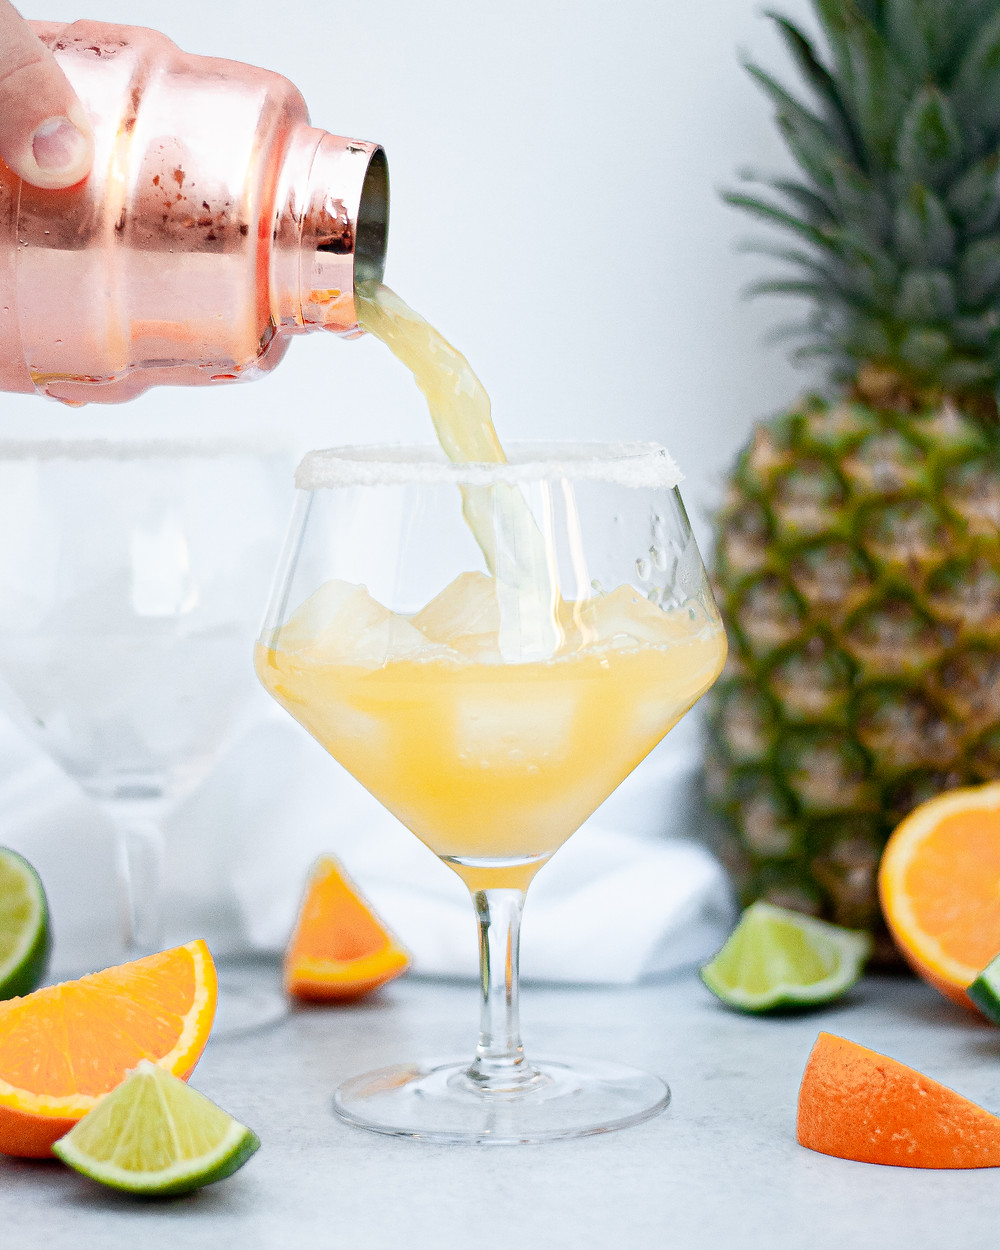 Pour shot of a glass being filled with a freshly shaken skinny pineapple margarita. Surrounded by slices or oranges and limes and a pineapple.